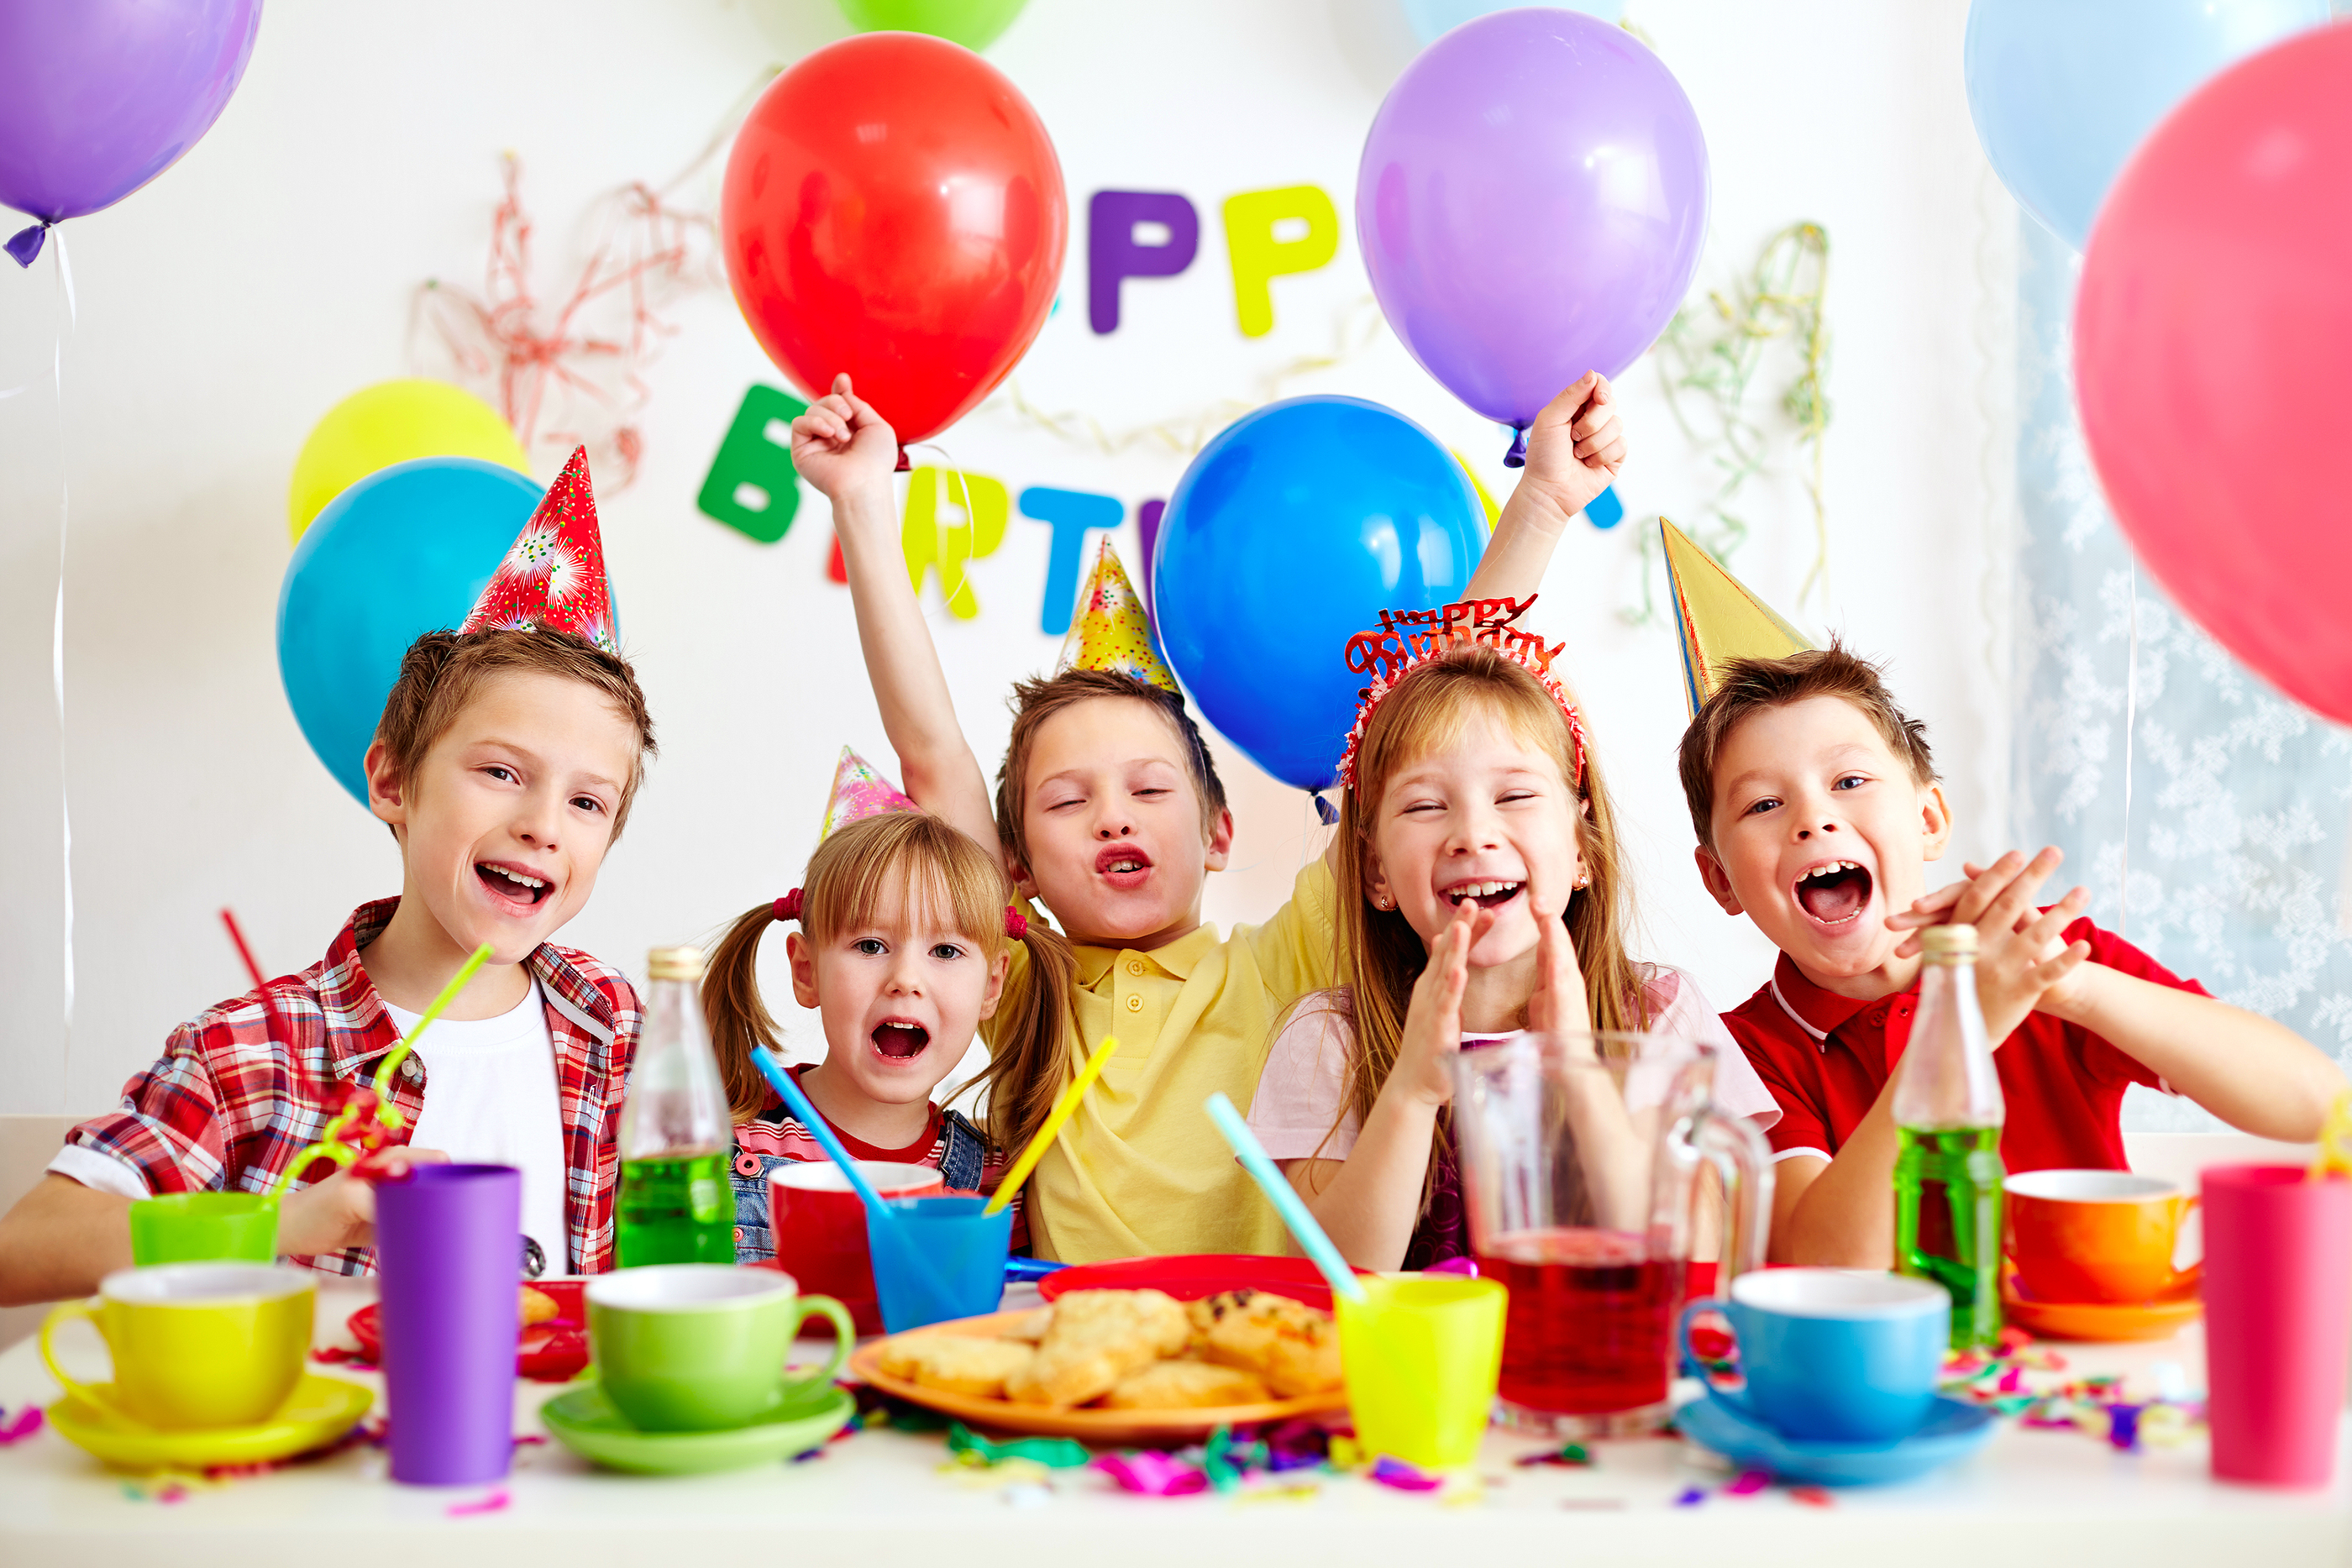 bigstock-Group-of-adorable-kids-having-39030568